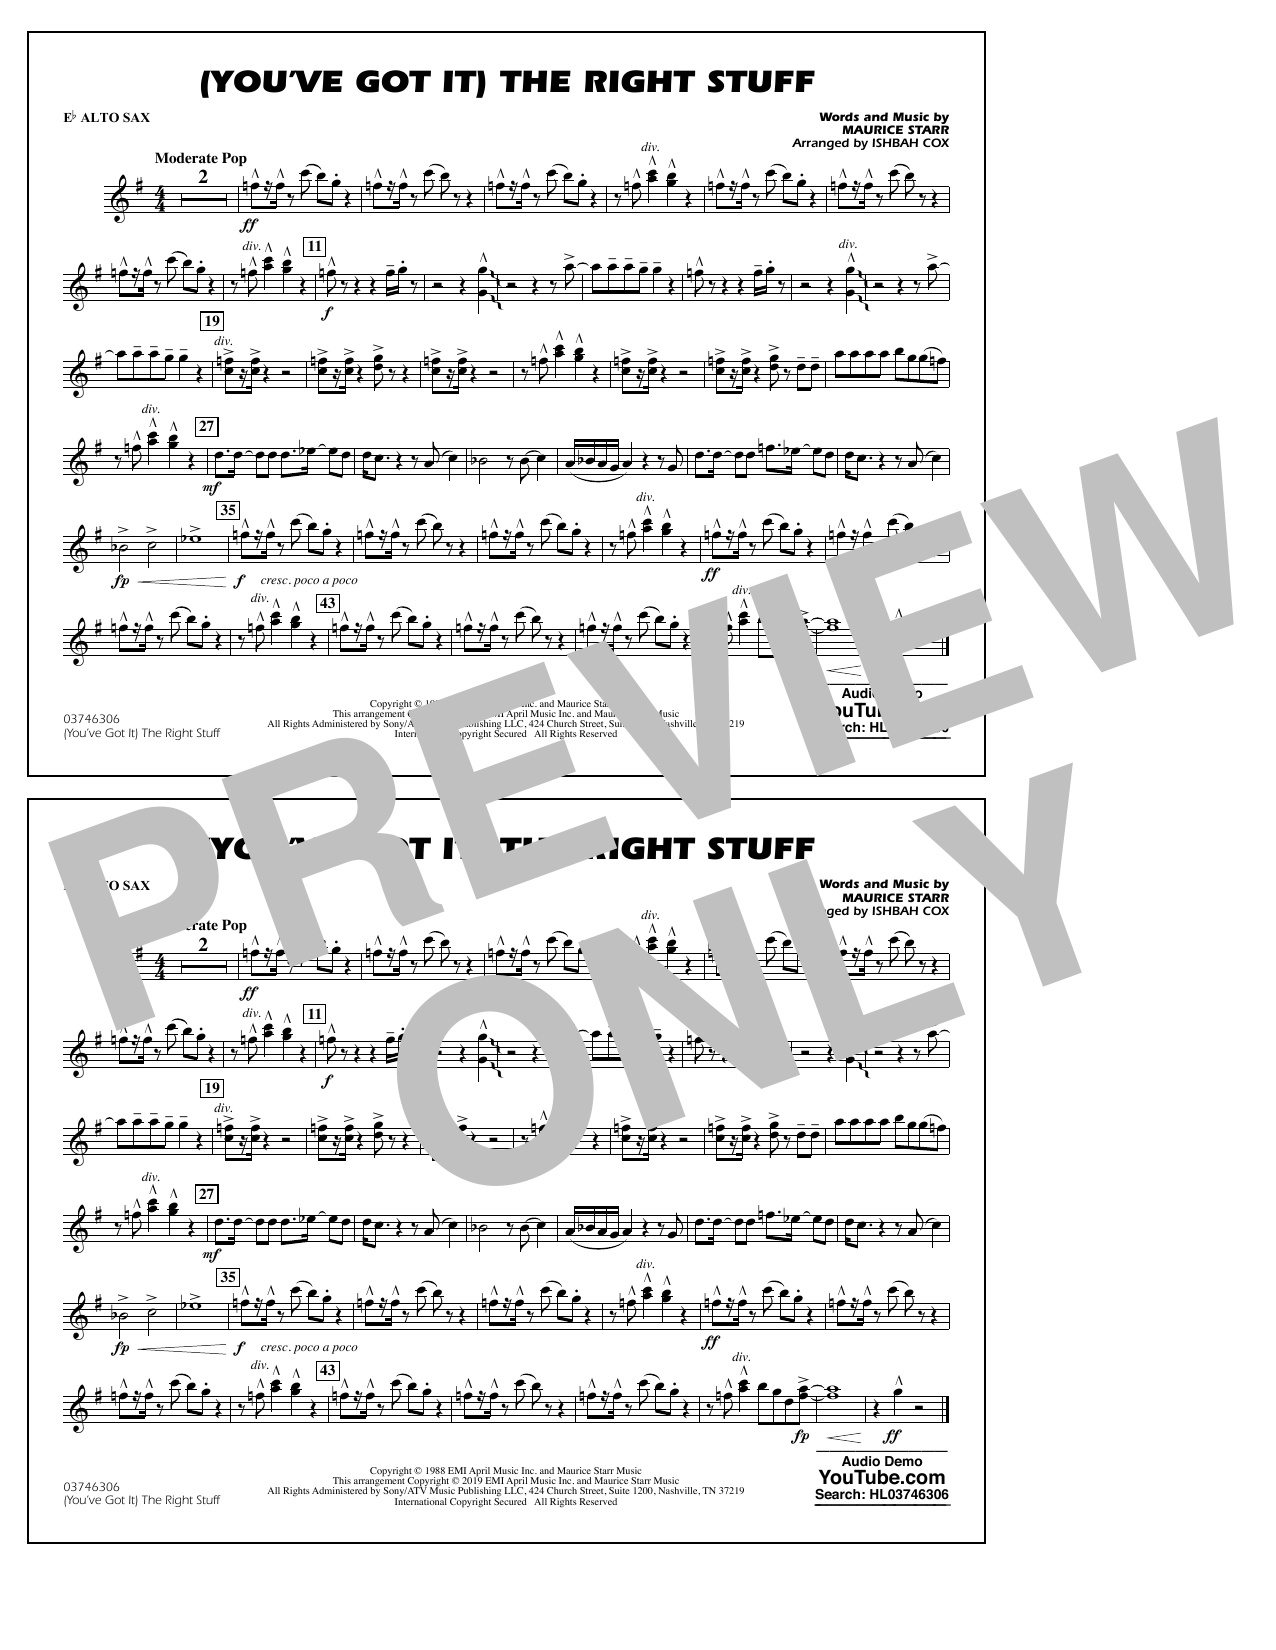 New Kids On The Block (You've Got It) The Right Stuff (arr. Ishbah Cox) - Eb Alto Sax sheet music preview music notes and score for Marching Band including 1 page(s)